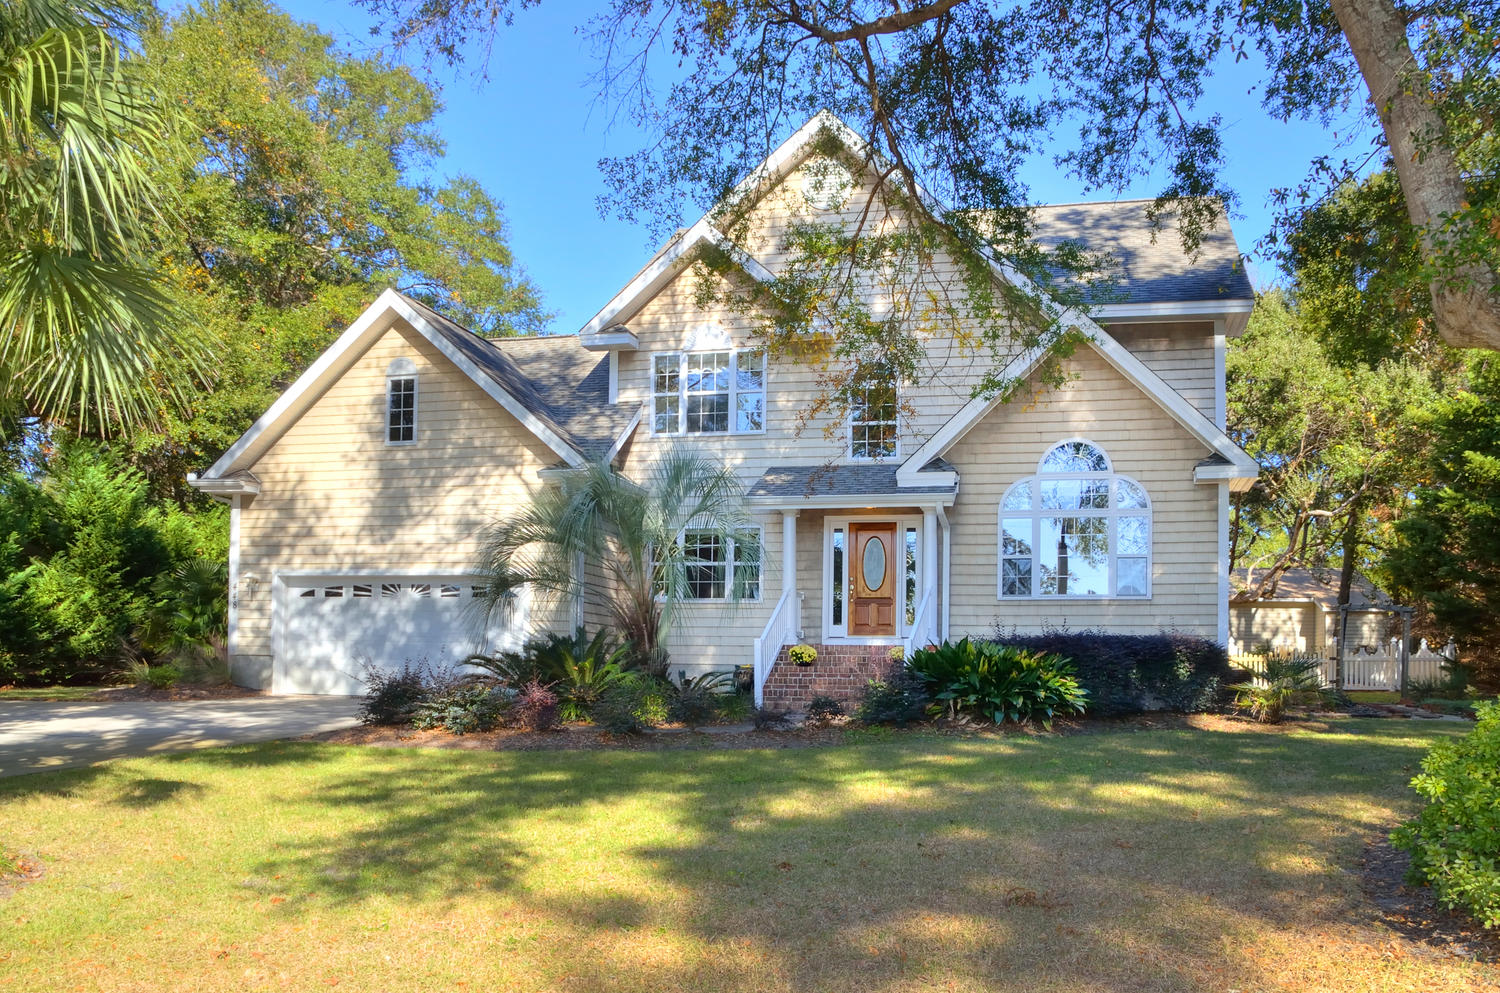 Single Family Home for Sale at Inviting Waterview Home in Sunset Beach 448 Lake Shore Drive Sunset Beach, North Carolina, 28468 United States